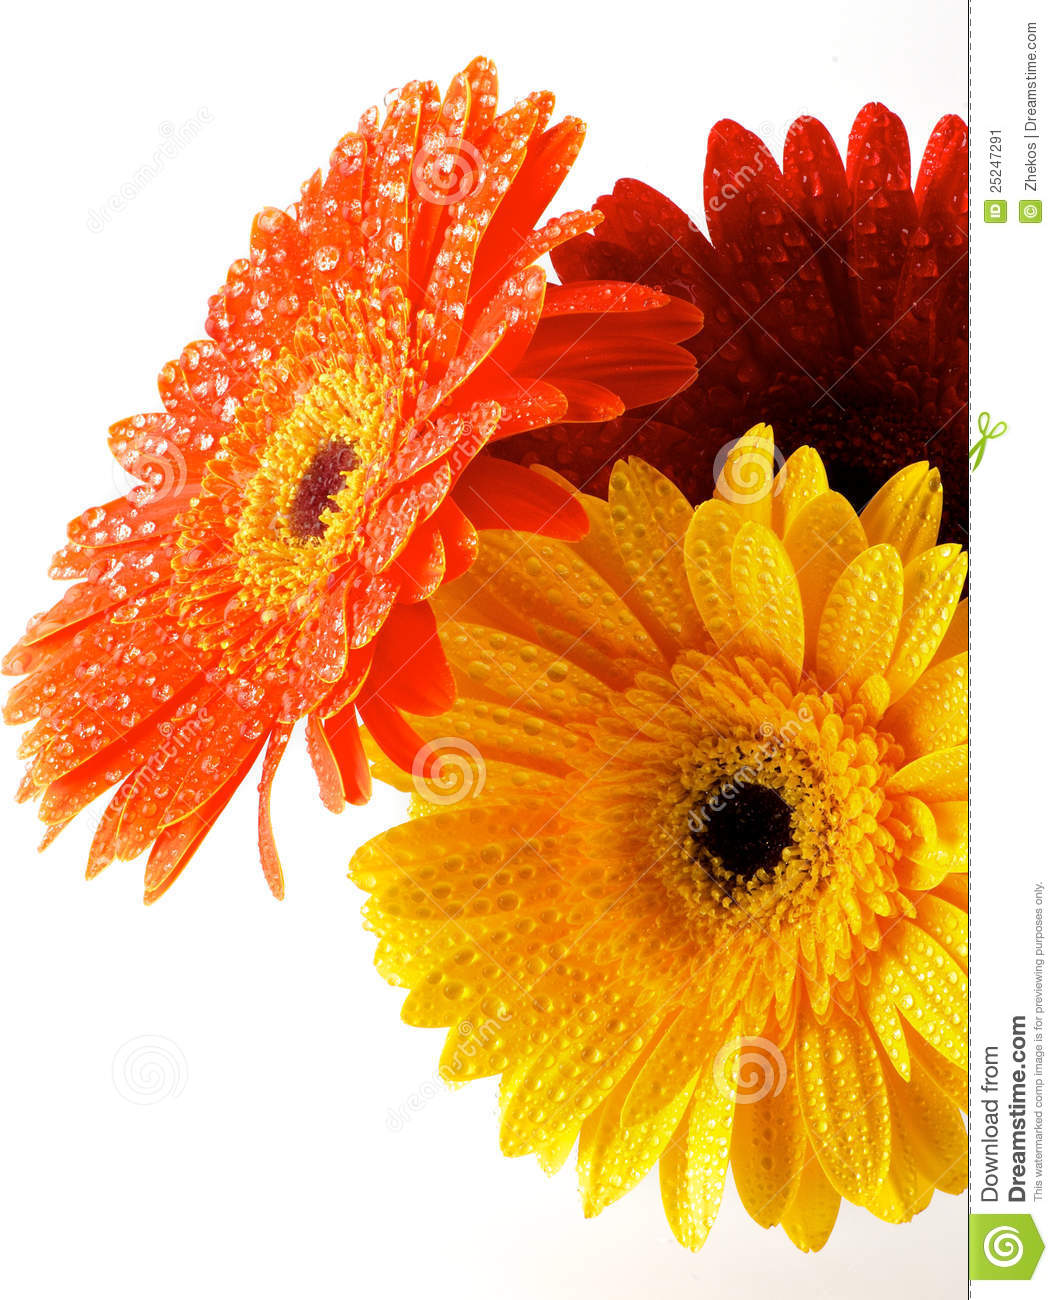 Red Orange And Yellow Gerbera Flowers Stock Image Image Of Abloom